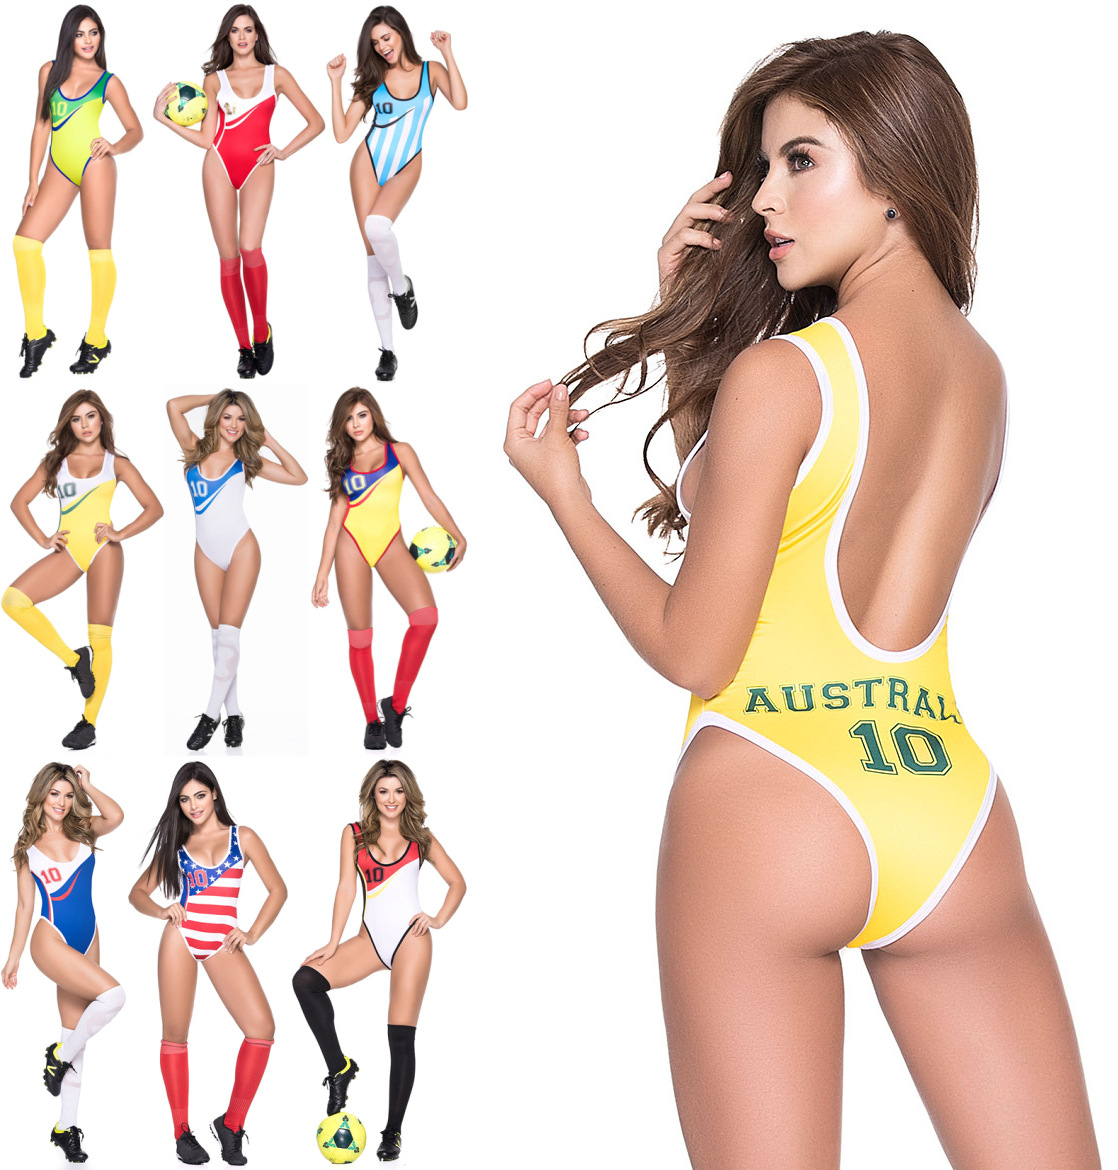 2019Football Cup Cheerleading Dress Vest Body Suit Sex Expose Back Night Club DS Performance Wear Cheerleaders Team 9 Countries